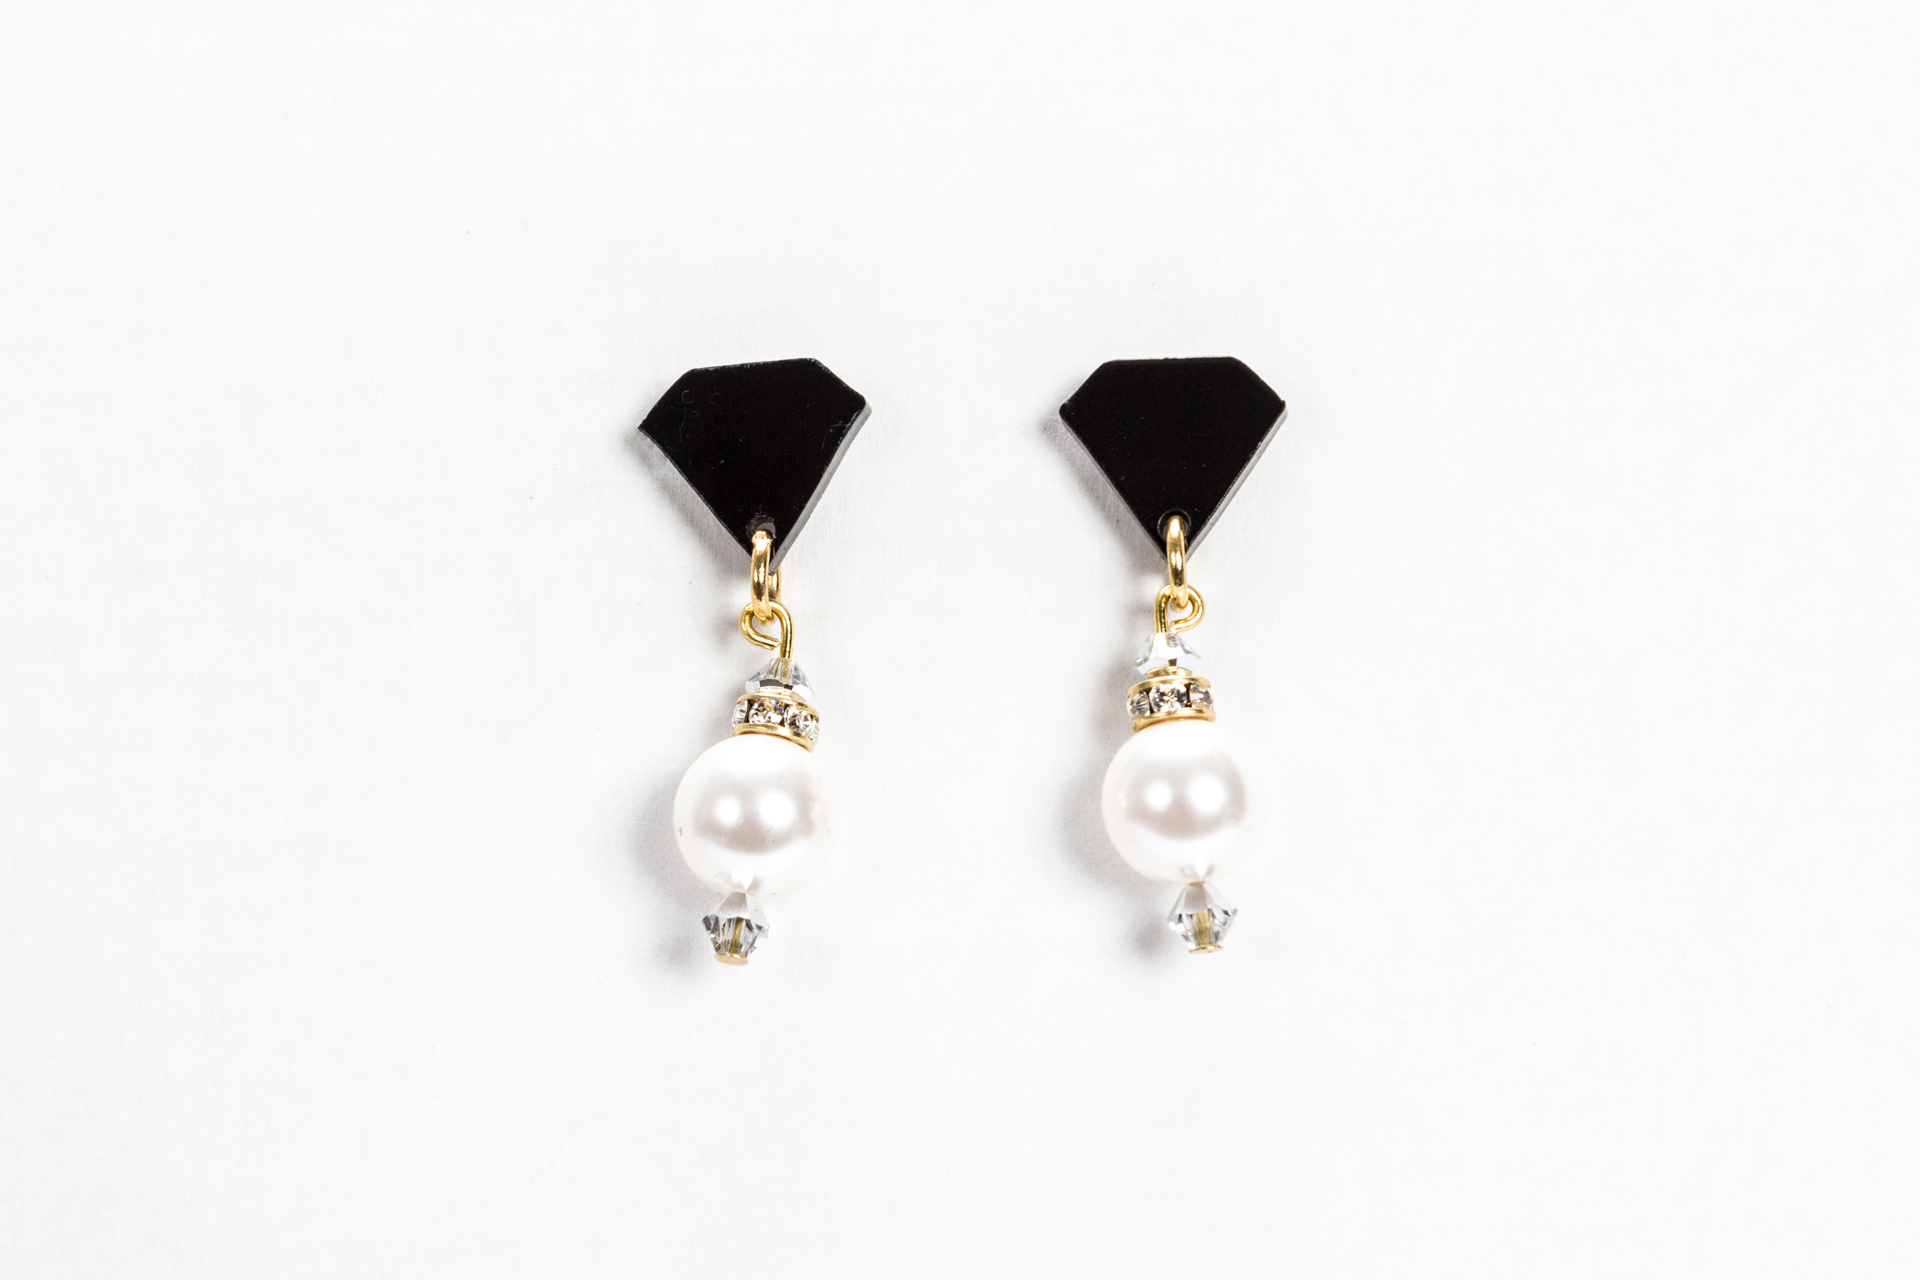 E2RD, My diamonds Collection, earrings, small